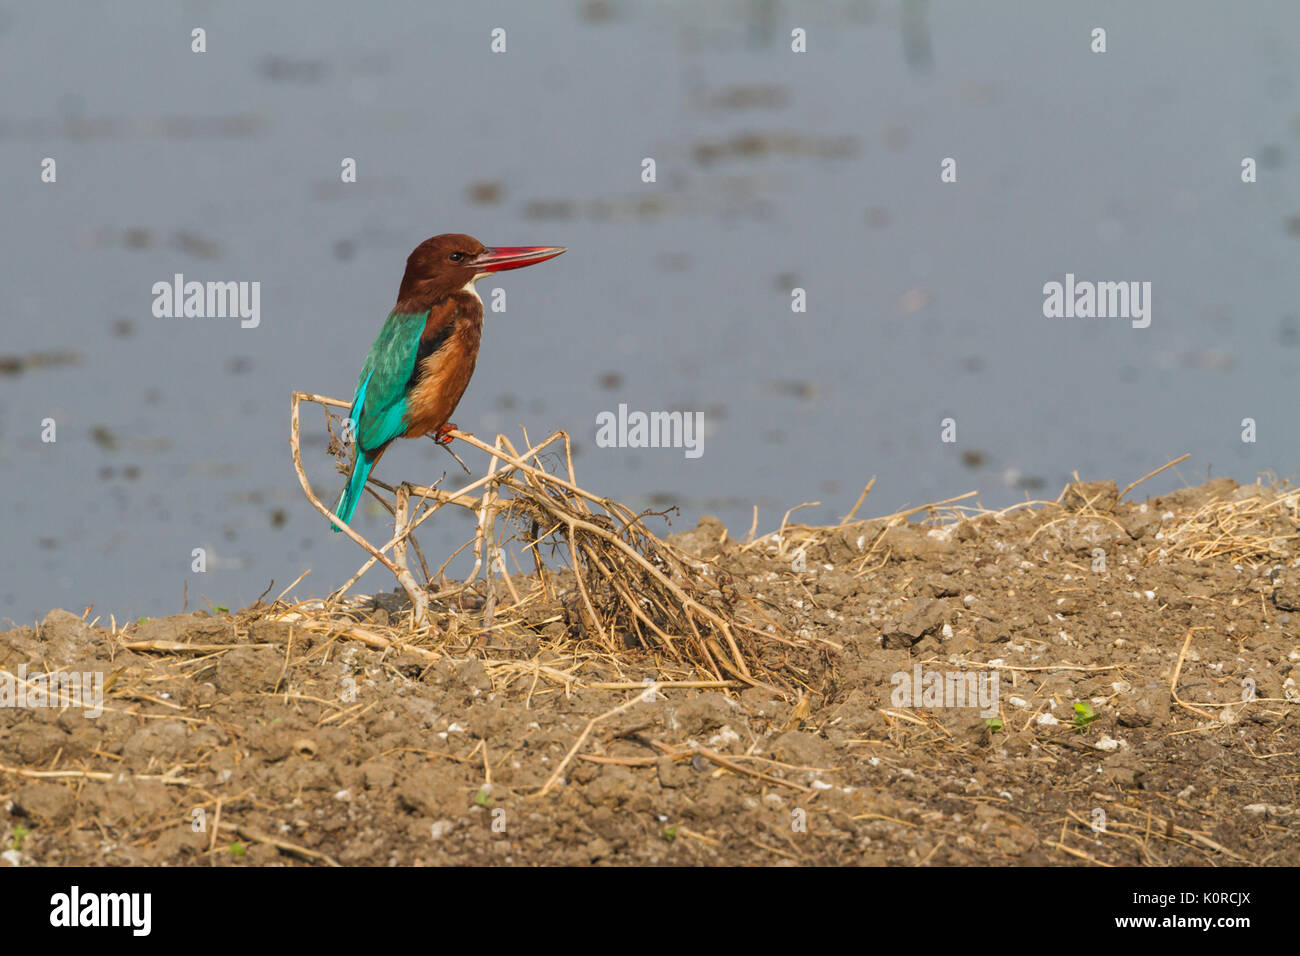 The white throated kingfisher (Halcyon smyrnensis)  at Bharatpur Bird Sanctuary - Stock Image